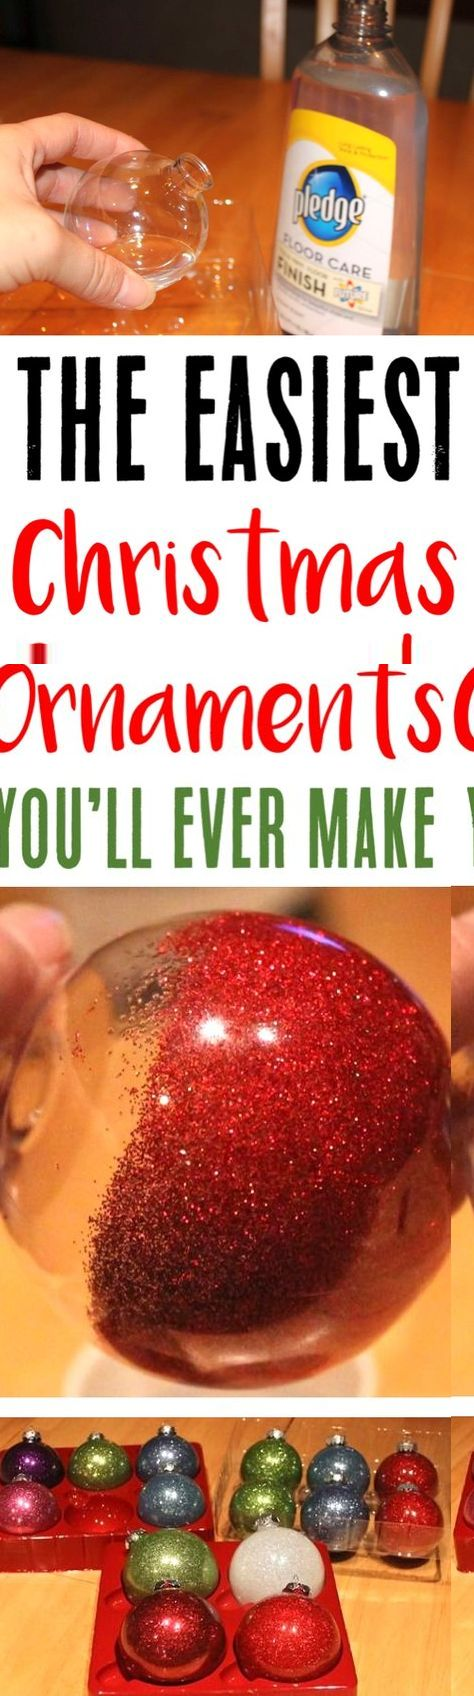 Christmas Ornaments Homemade DIY Ornament Craft! These EASY ornaments are so simple to make, and be customized with your favorite color of glitter! You'll just need 3 things to make yours!